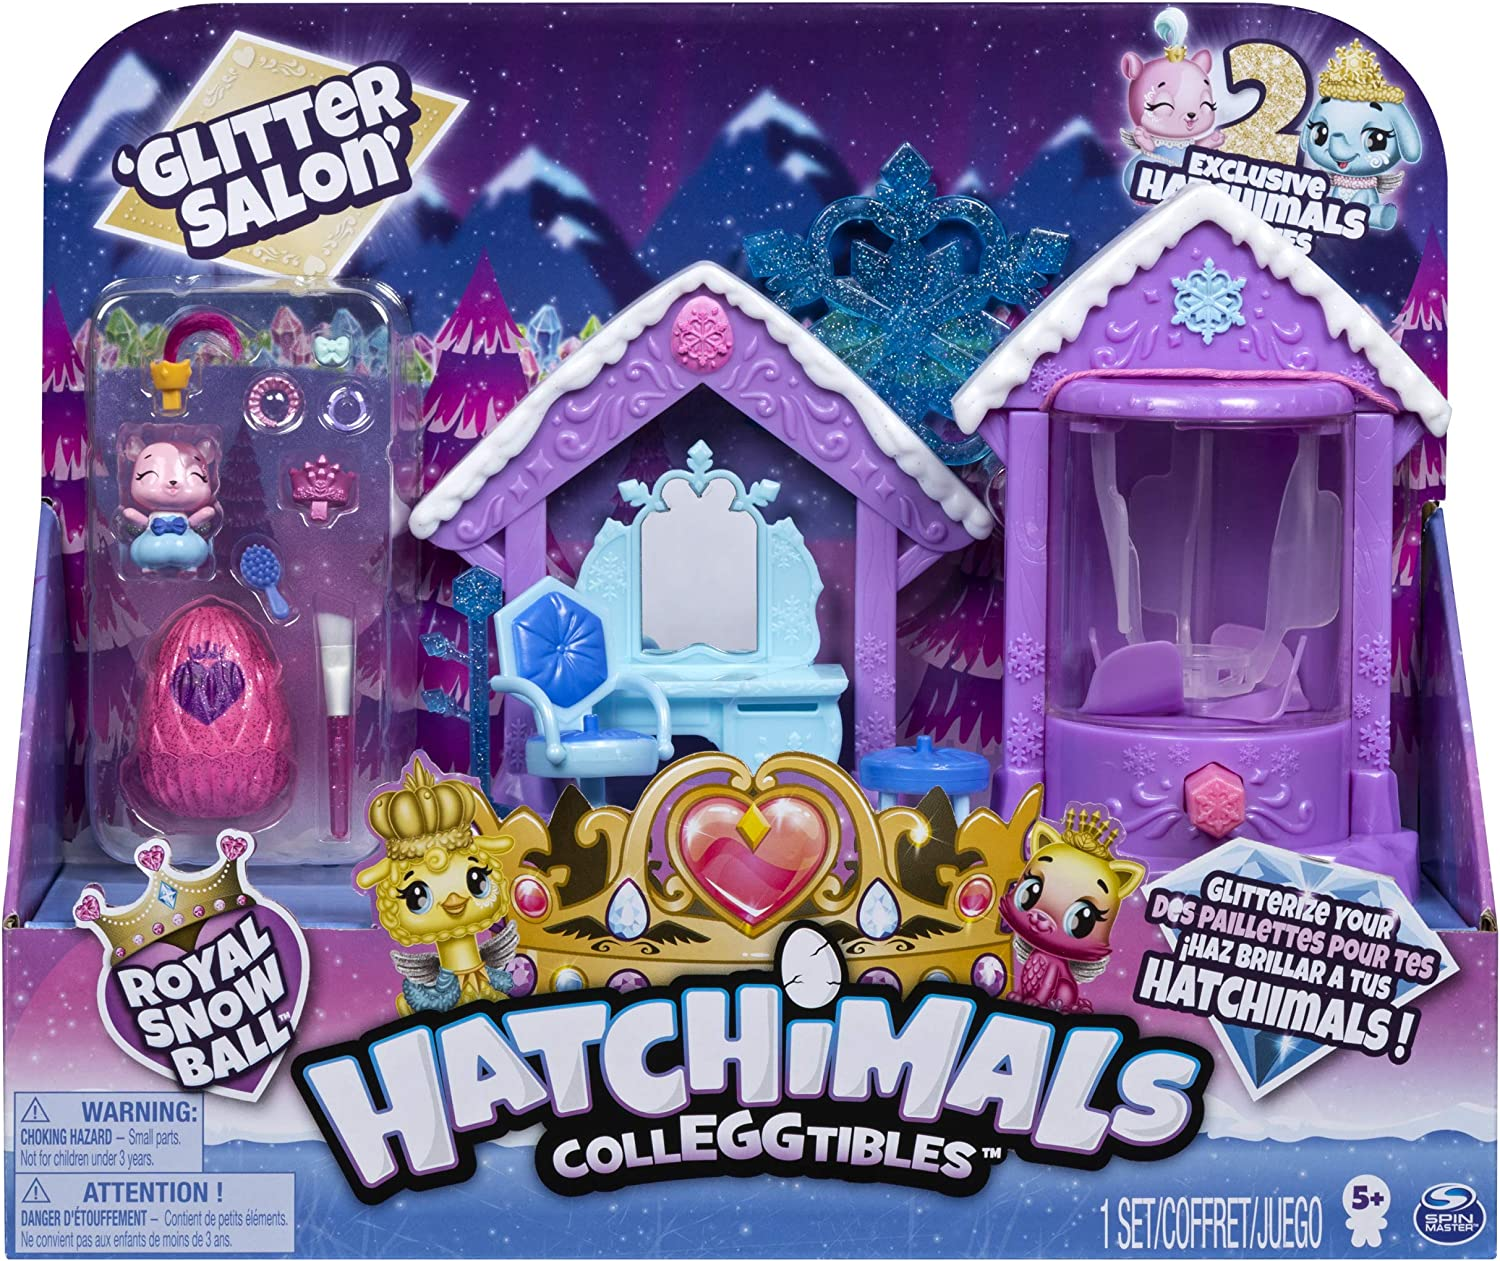 HATCHIMALS 6047221 CollEGGtibles, Season 6, Glitter Salon Playset with 2 Exclusive HATCHIMALS, for Kids Aged 5 and Up, Multicolour